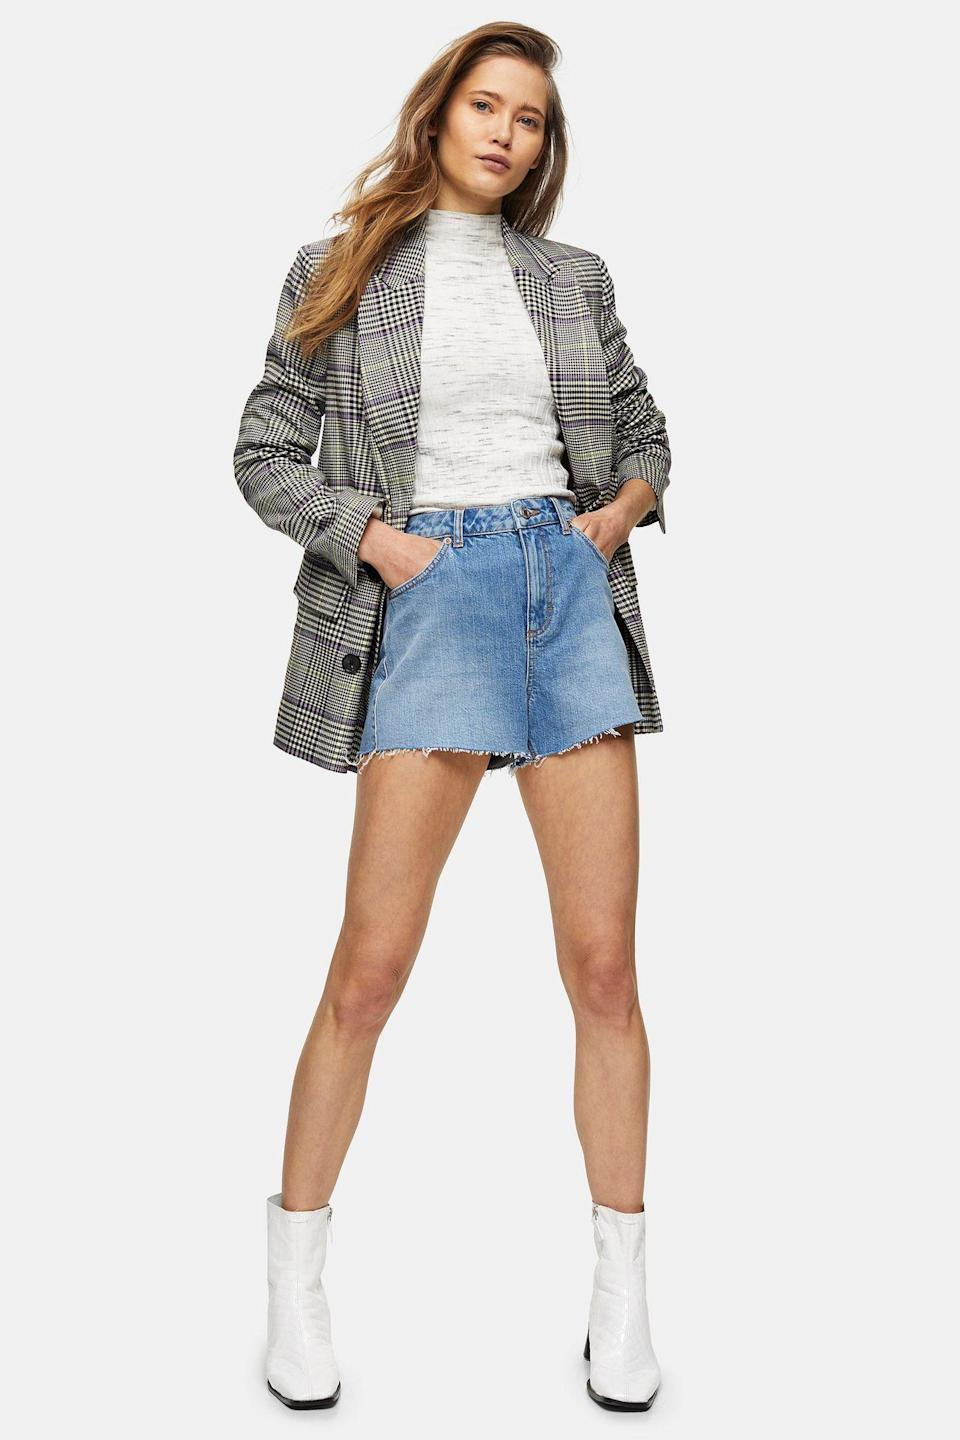 """<p><strong>Topshop</strong></p><p>topshop.com</p><p><strong>$51.00</strong></p><p><a href=""""https://go.redirectingat.com?id=74968X1596630&url=https%3A%2F%2Fus.topshop.com%2Fen%2Ftsus%2Fproduct%2Fpremium-blue-denim-mom-shorts-9649744&sref=https%3A%2F%2Fwww.cosmopolitan.com%2Fstyle-beauty%2Ffashion%2Fg10327302%2Fcute-fall-outfits%2F"""" rel=""""nofollow noopener"""" target=""""_blank"""" data-ylk=""""slk:Shop Now"""" class=""""link rapid-noclick-resp"""">Shop Now</a></p><p>Don't put your cutoffs in storage just yet. Give them a few more wears by adding a mockneck shirt and an oversized blazer. White boots also make them more seasonally appropriate. </p>"""